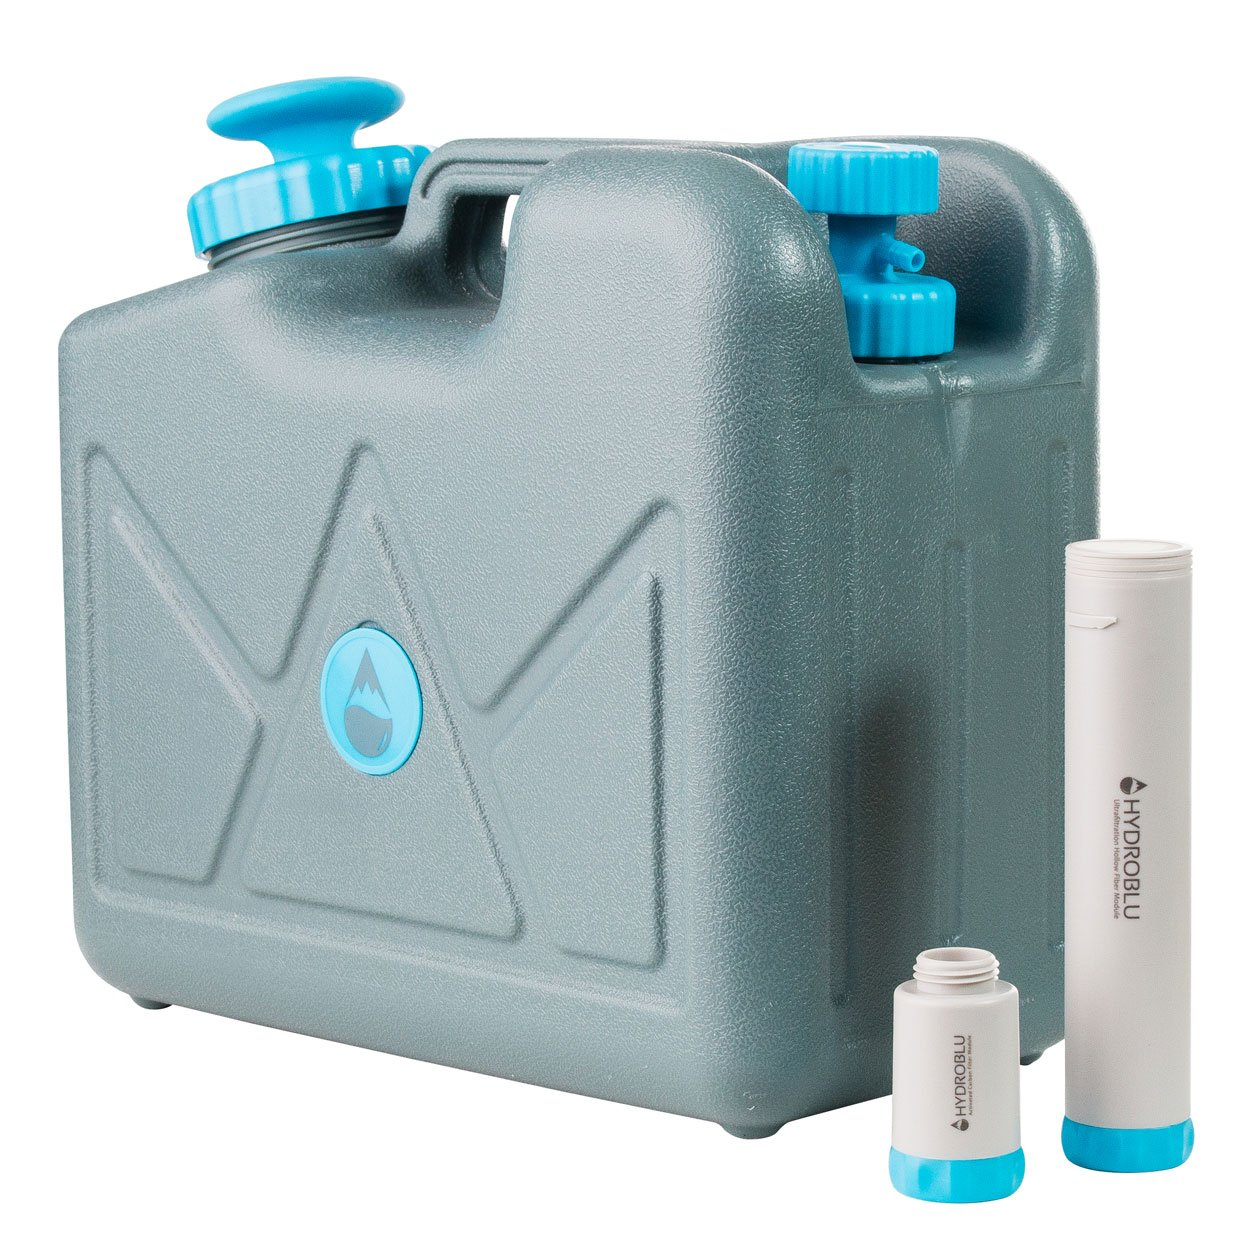 Pressurized Jerry Can Water Filter (4 Gallon) -Activated Carbon and Hollow Fiber Membrane Water Filter for Travel, Camping, and Emergency Preparedness - Survivor or Emergency Use